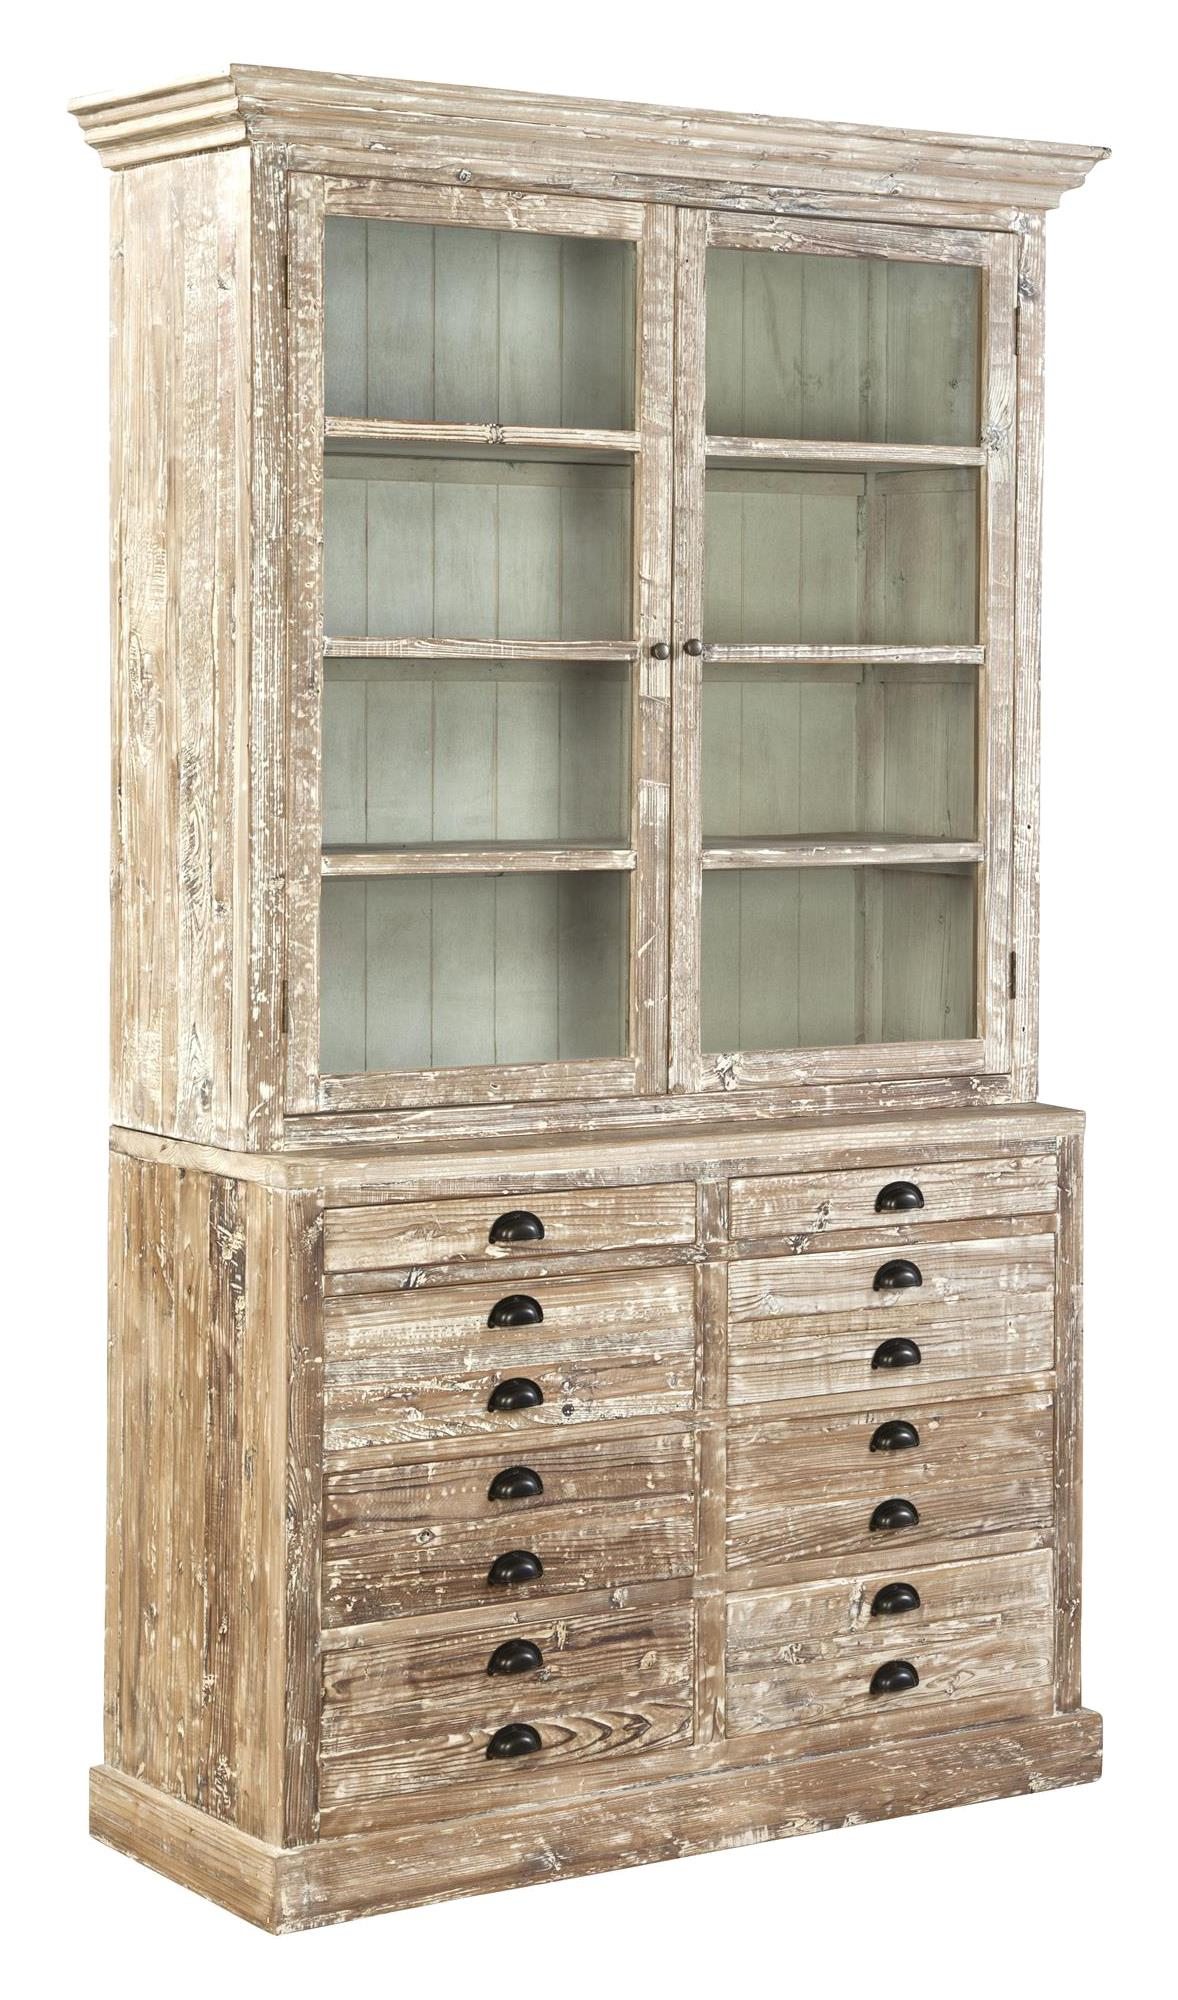 Apothecary Bookcase or China Cabinet